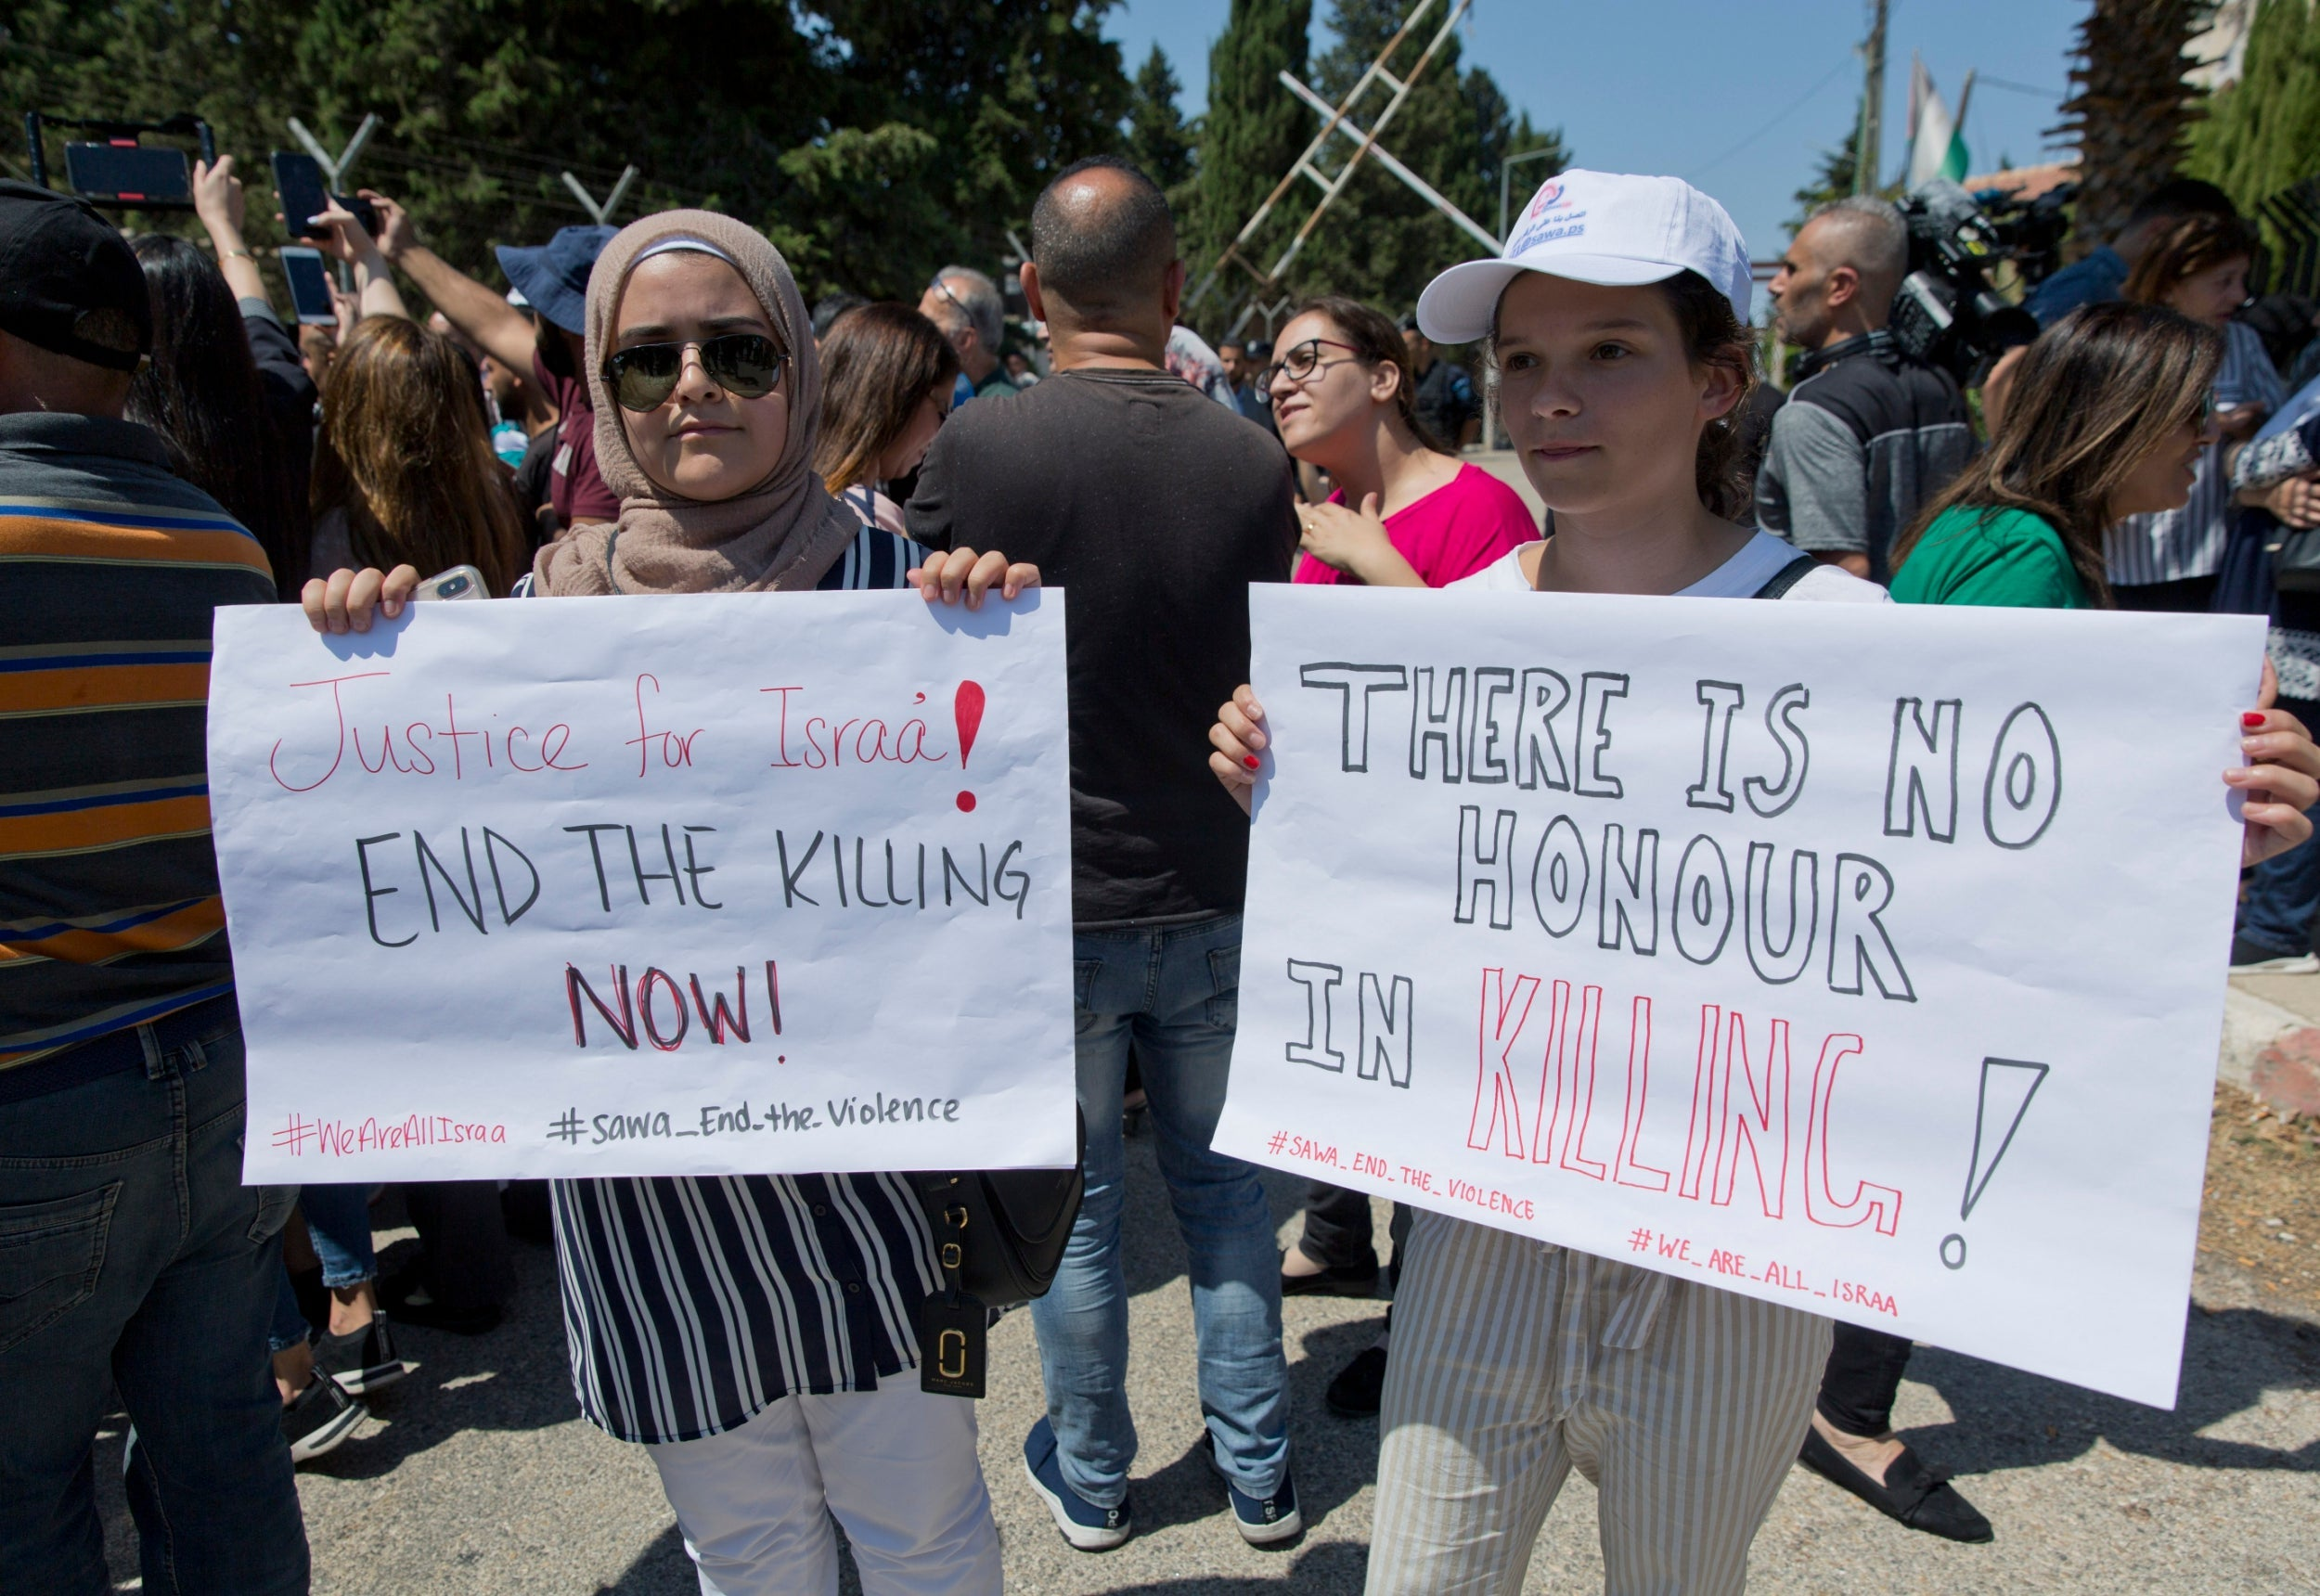 Suspected honour killing of 21-year-old woman sparks Palestinian protests